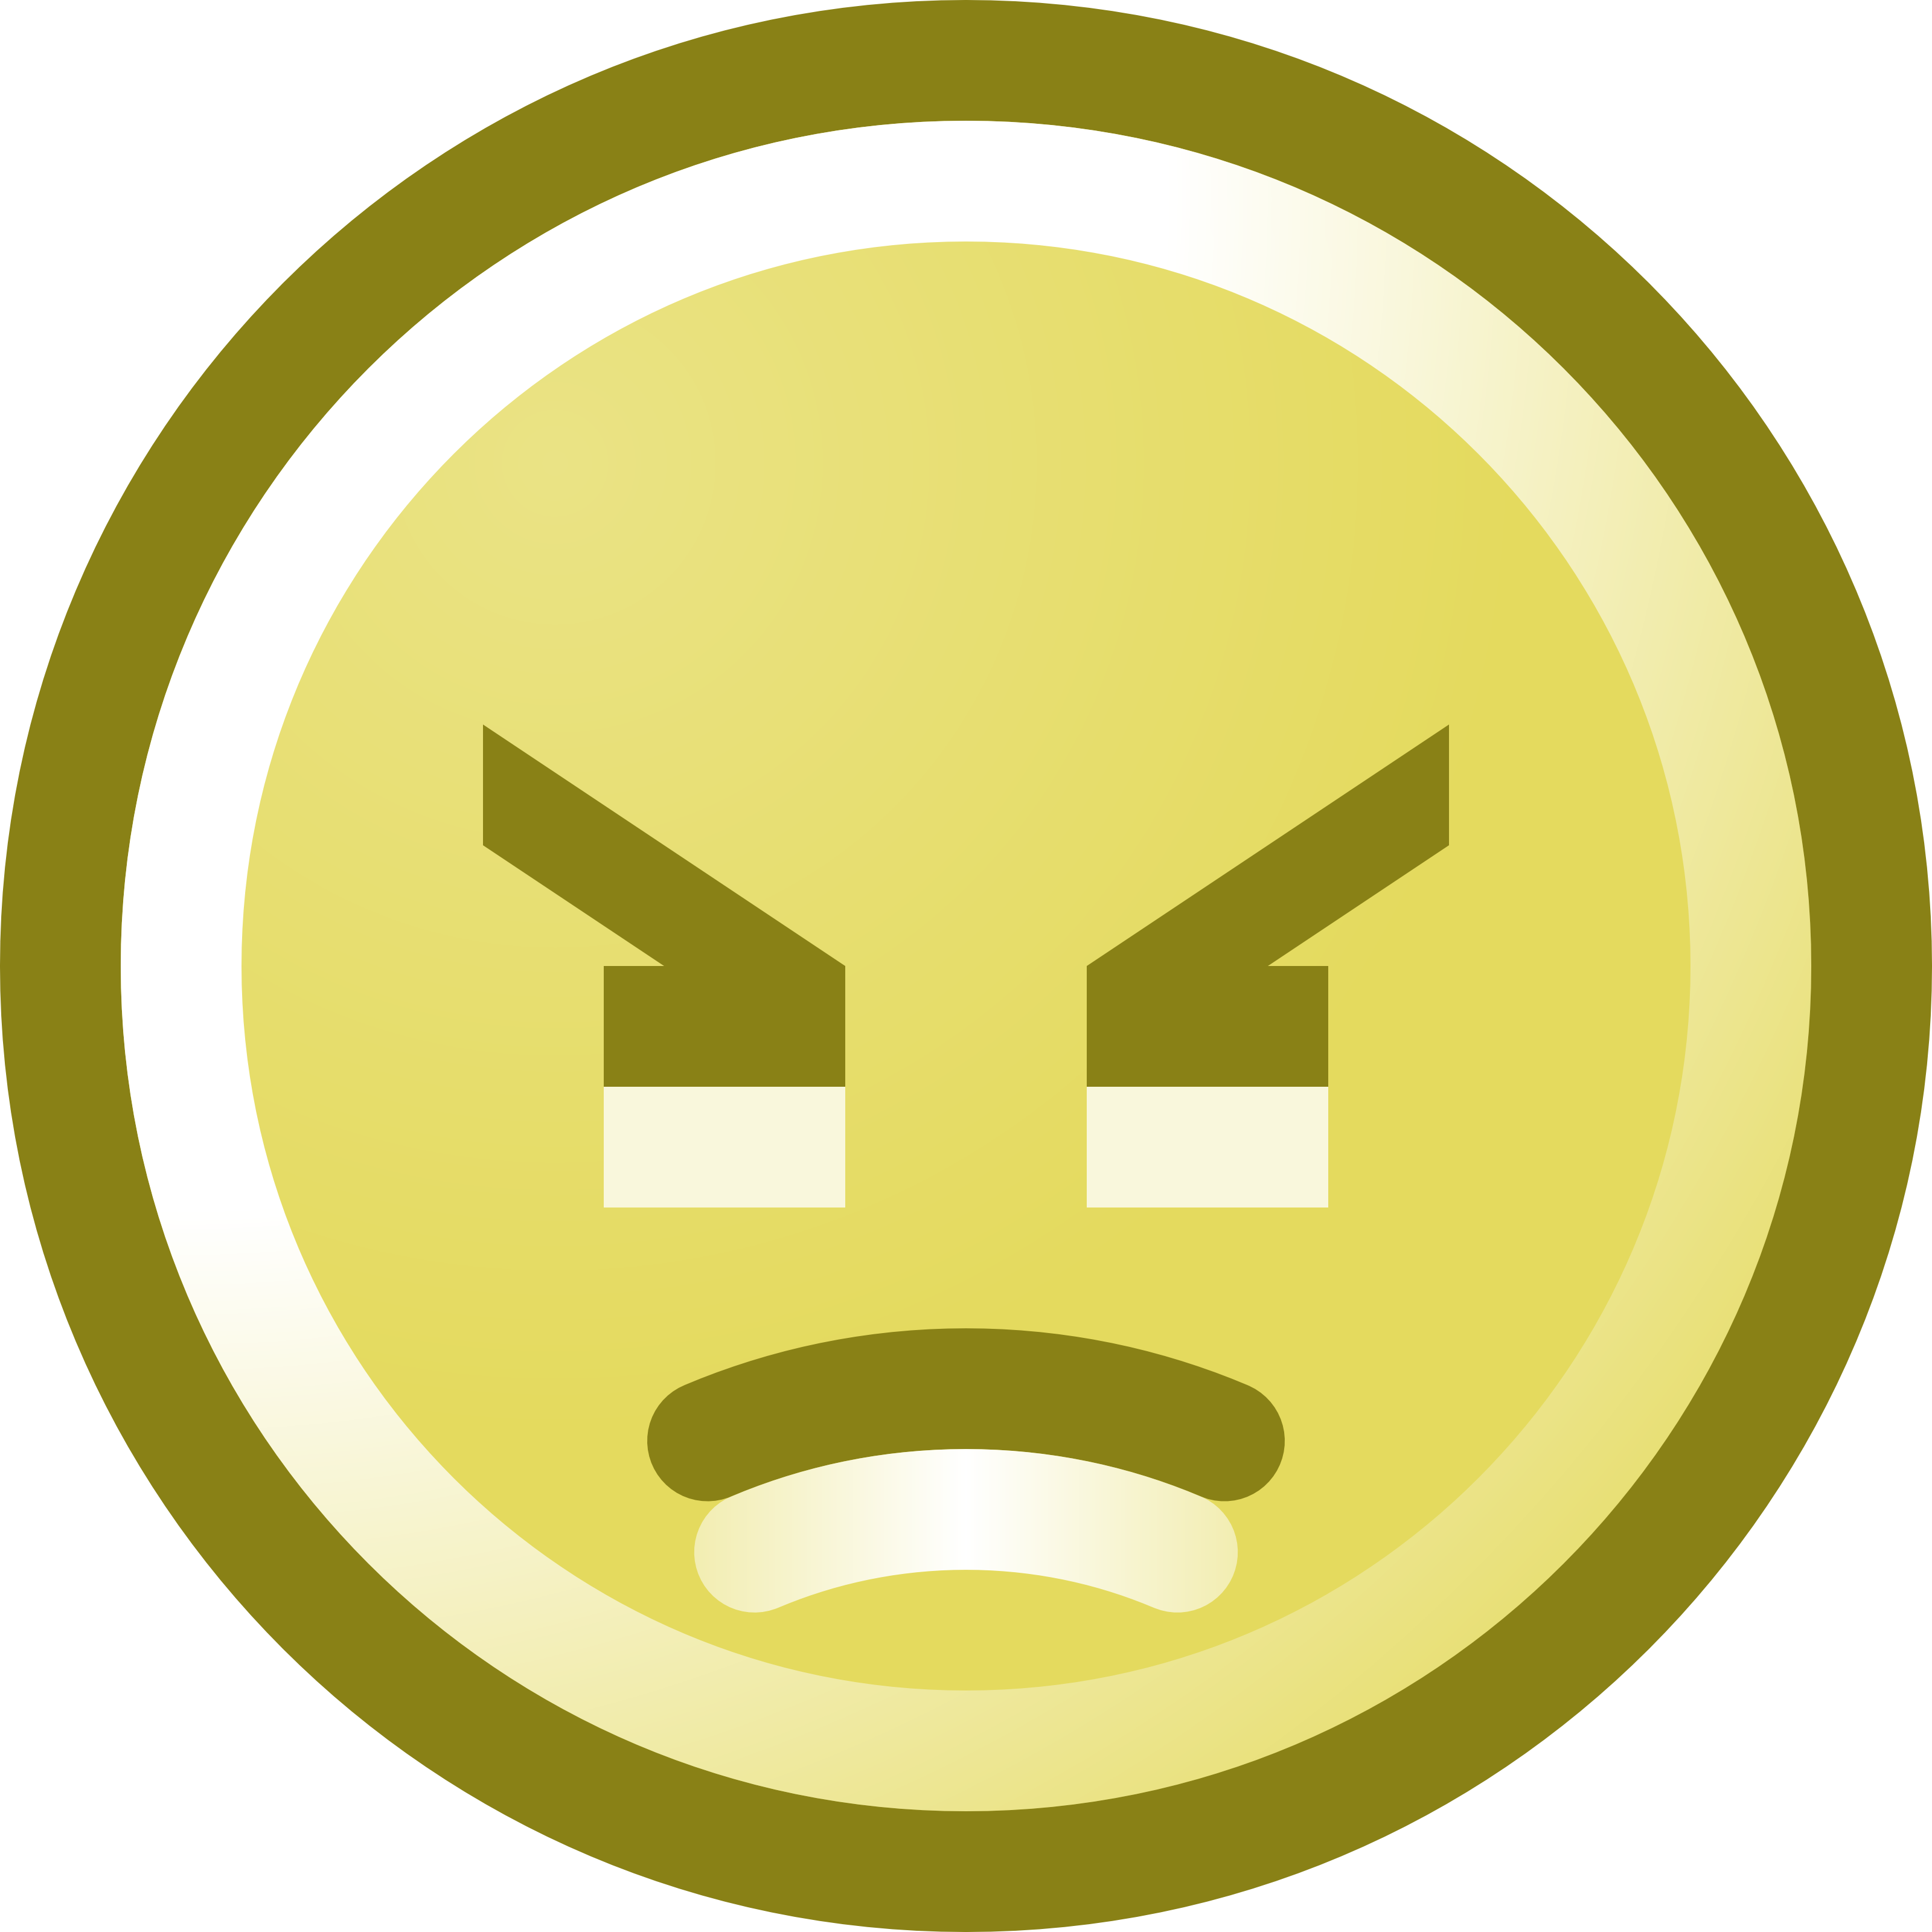 3200x3200 Clip Art Angry Mean Smiley Clipart